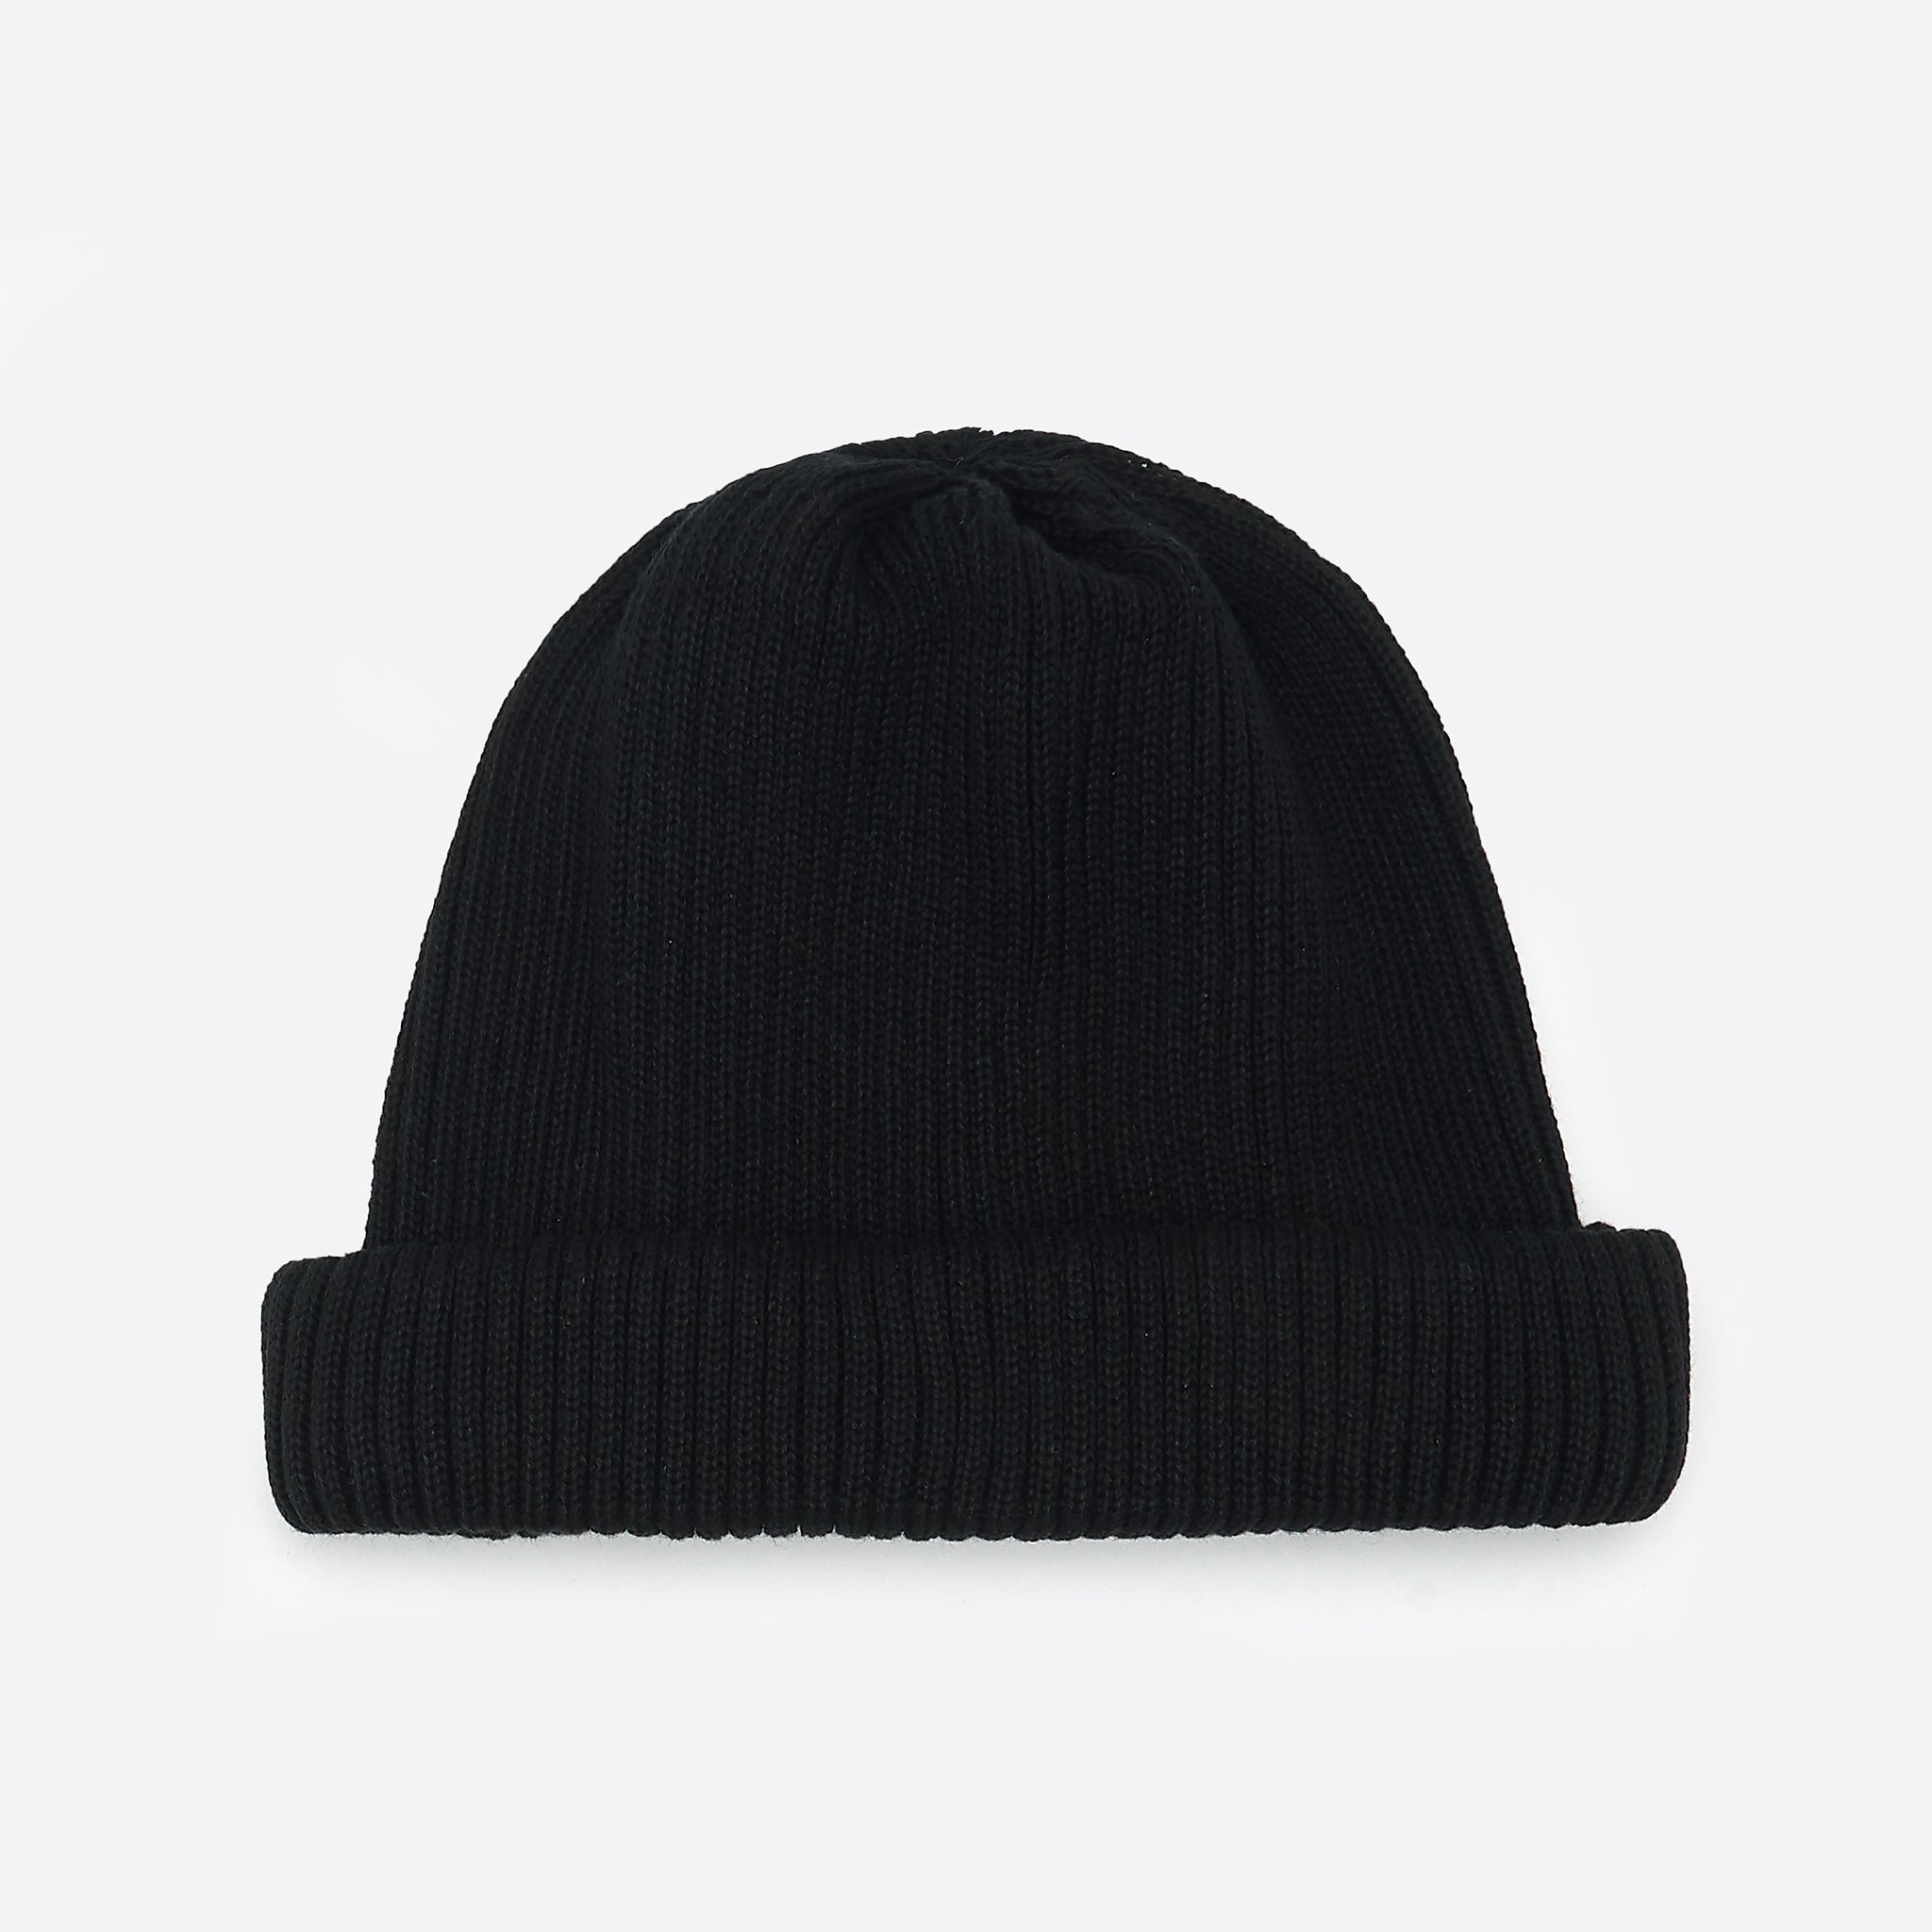 RoToTo Cotton Roll Up Beanie in Black